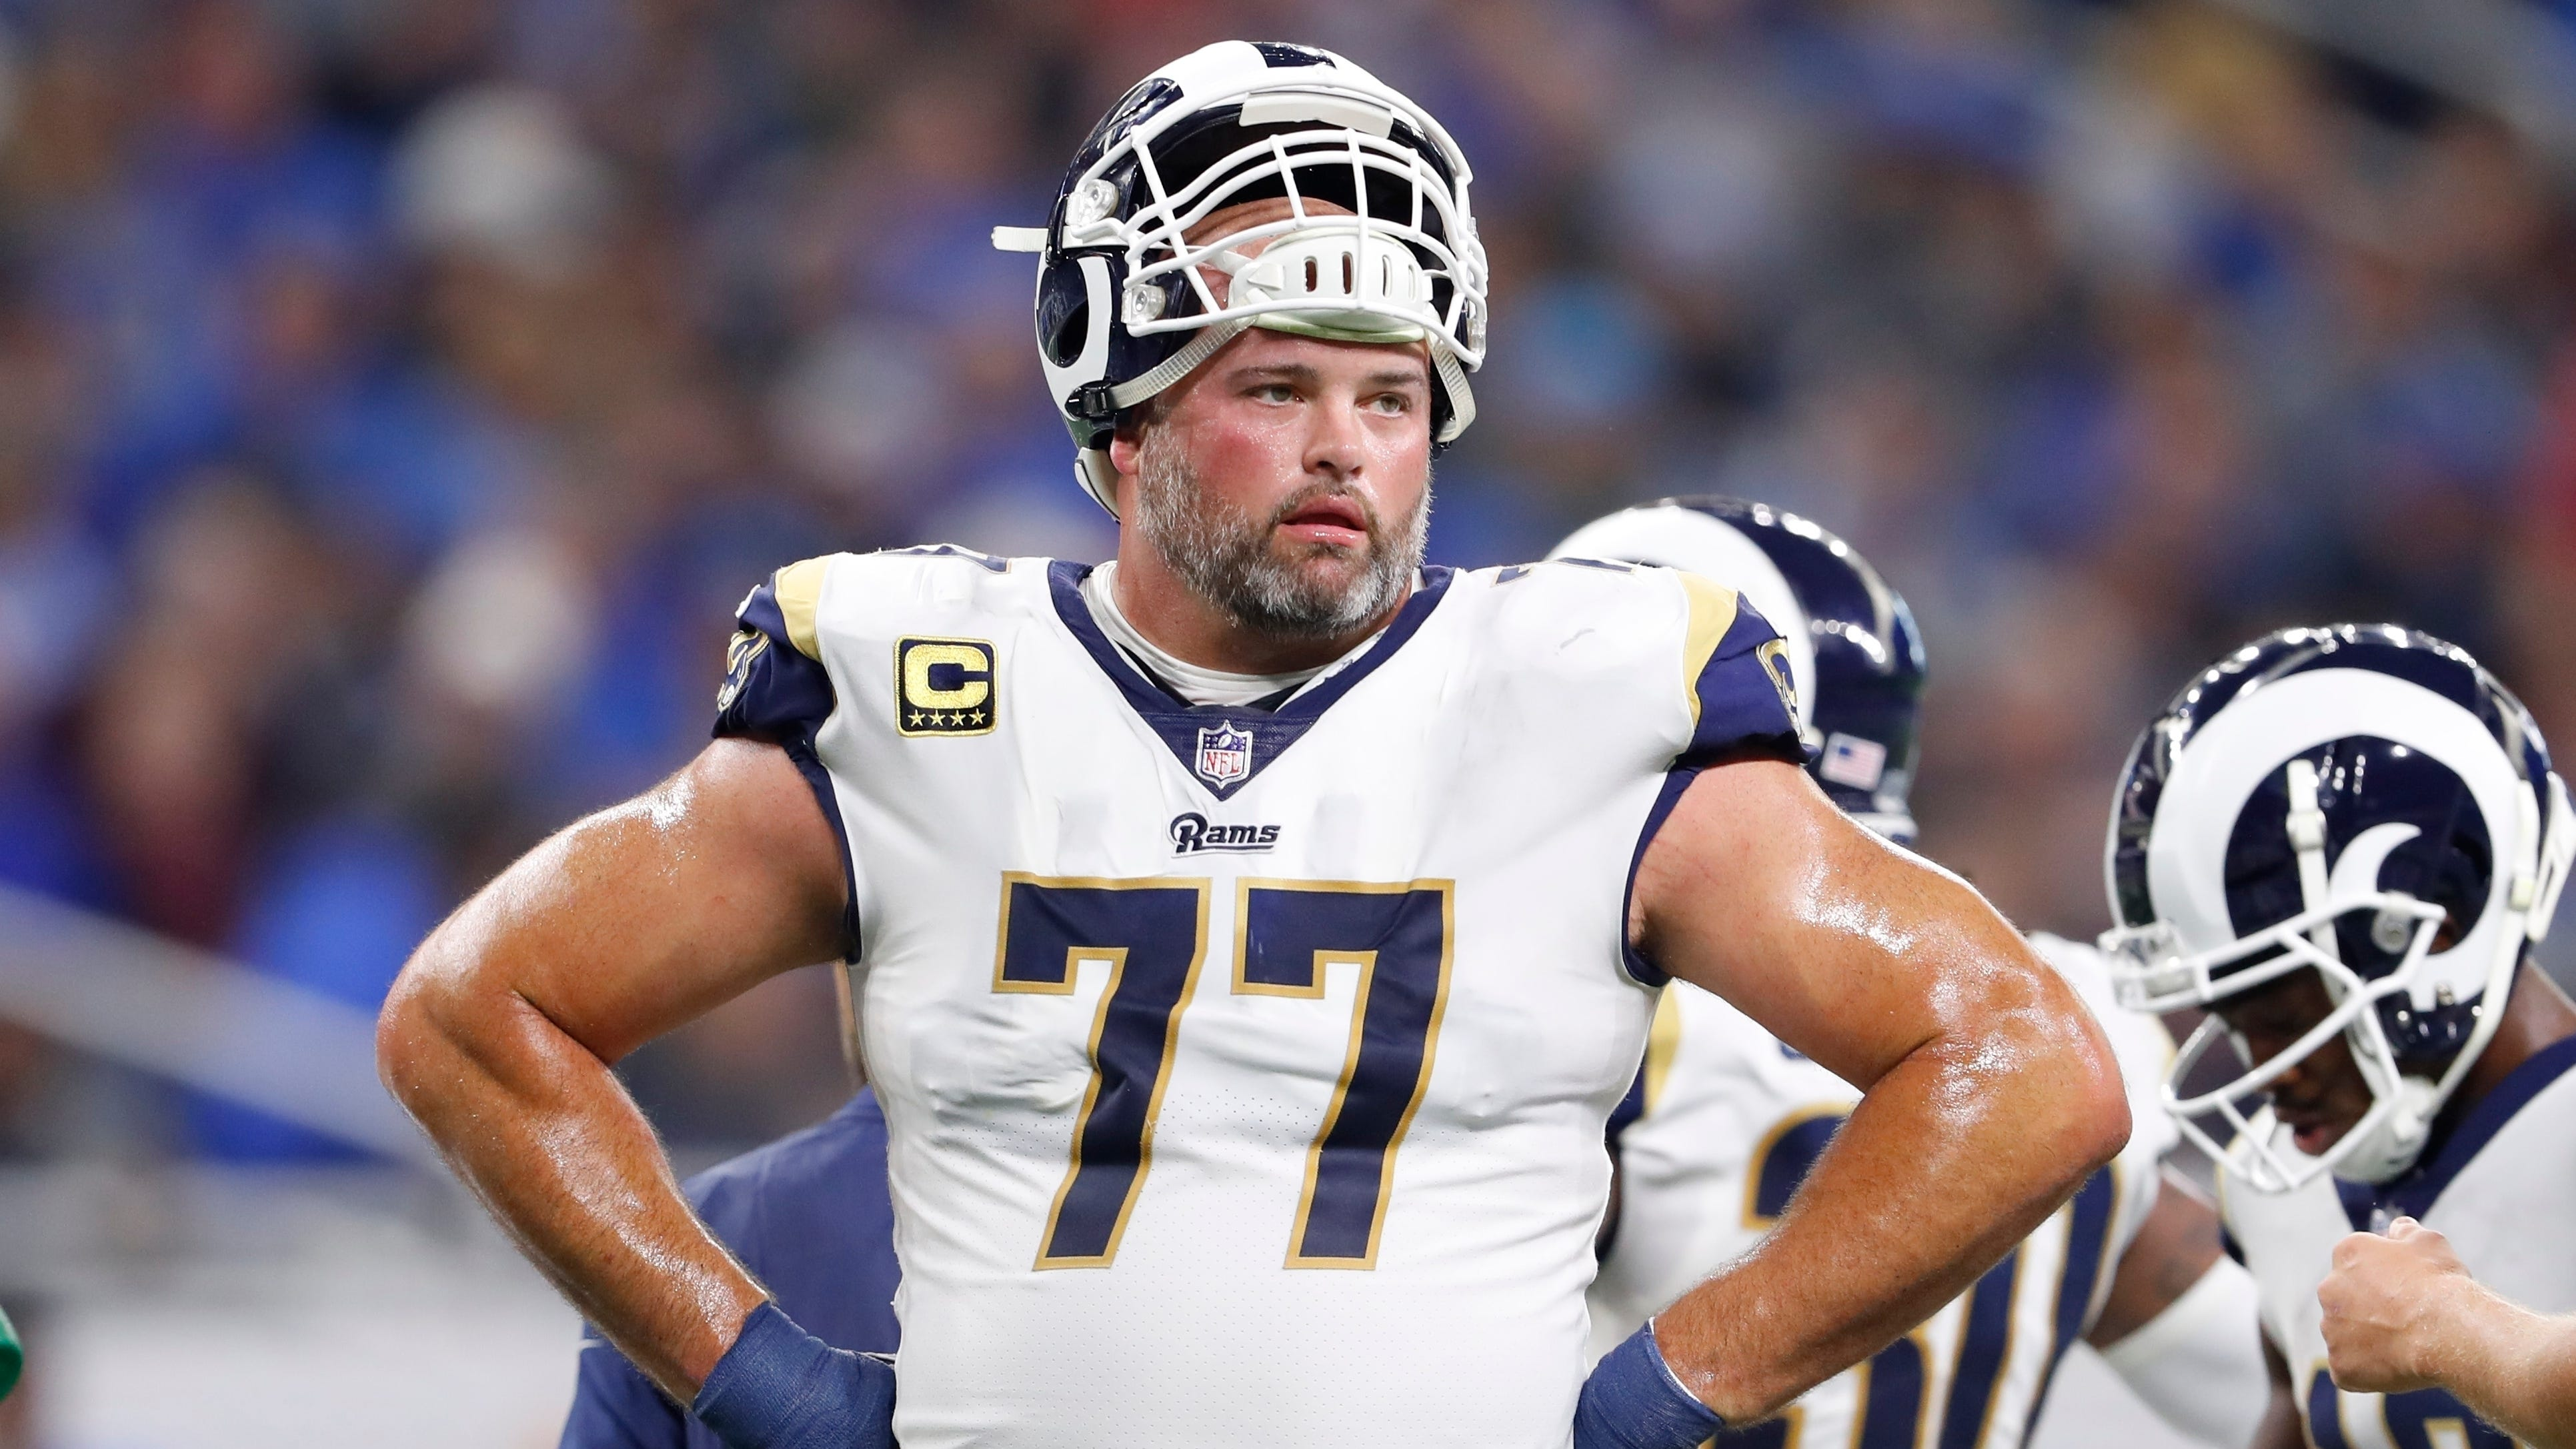 Los Angeles Rams offensive tackle Andrew Whitworth thinks Saints players are spending too much time venting over a controversial no-call...as his team gears up for the Super Bowl.